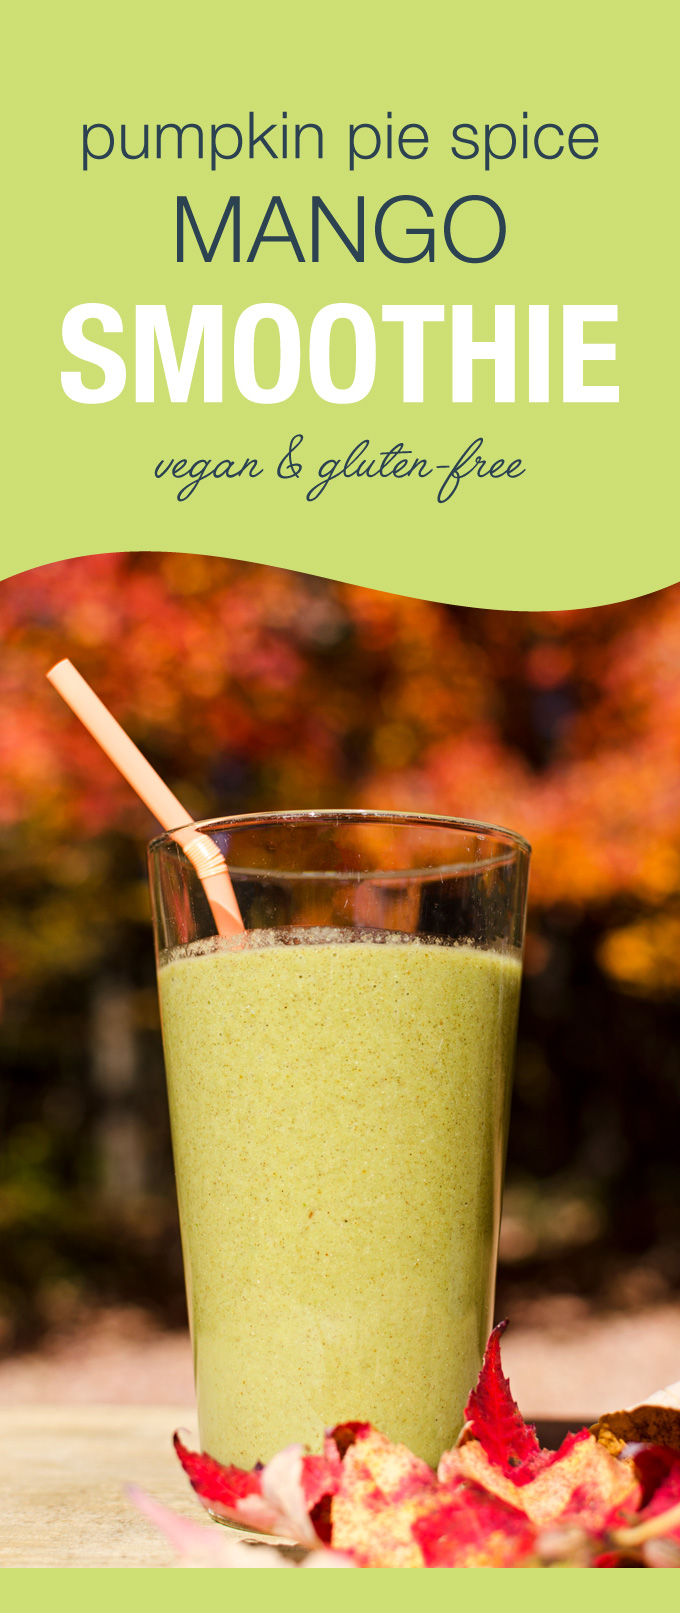 Pumpkin Pie Spice Mango Smoothie - You can whip up this tasty gluten-free vegan recipe in minutes with six easy-to-keep-on-hand ingredients   VeggiePrimer.com